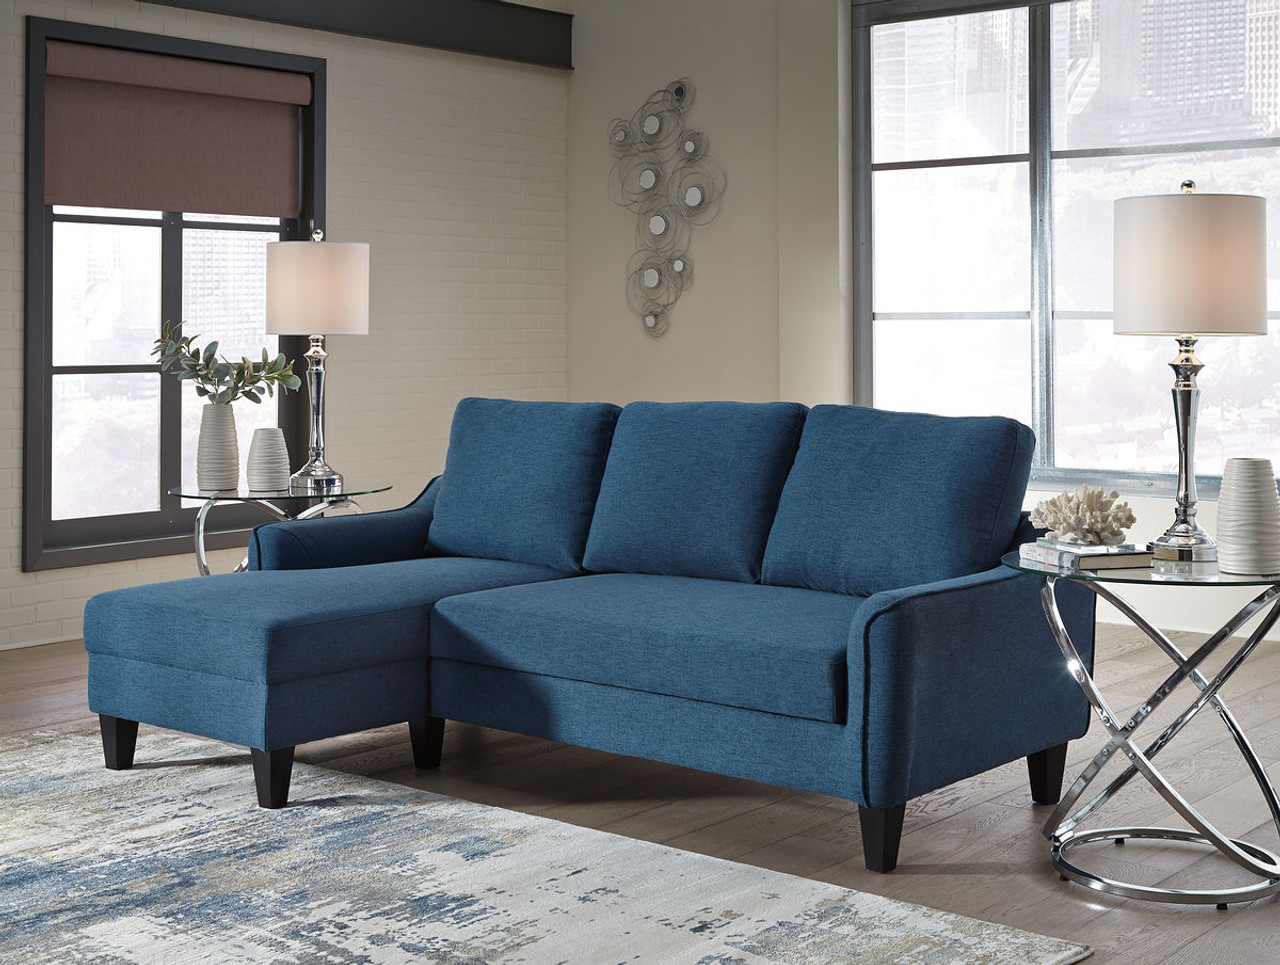 Amazing Jarreau Blue Queen Sofa Sleeper Inzonedesignstudio Interior Chair Design Inzonedesignstudiocom